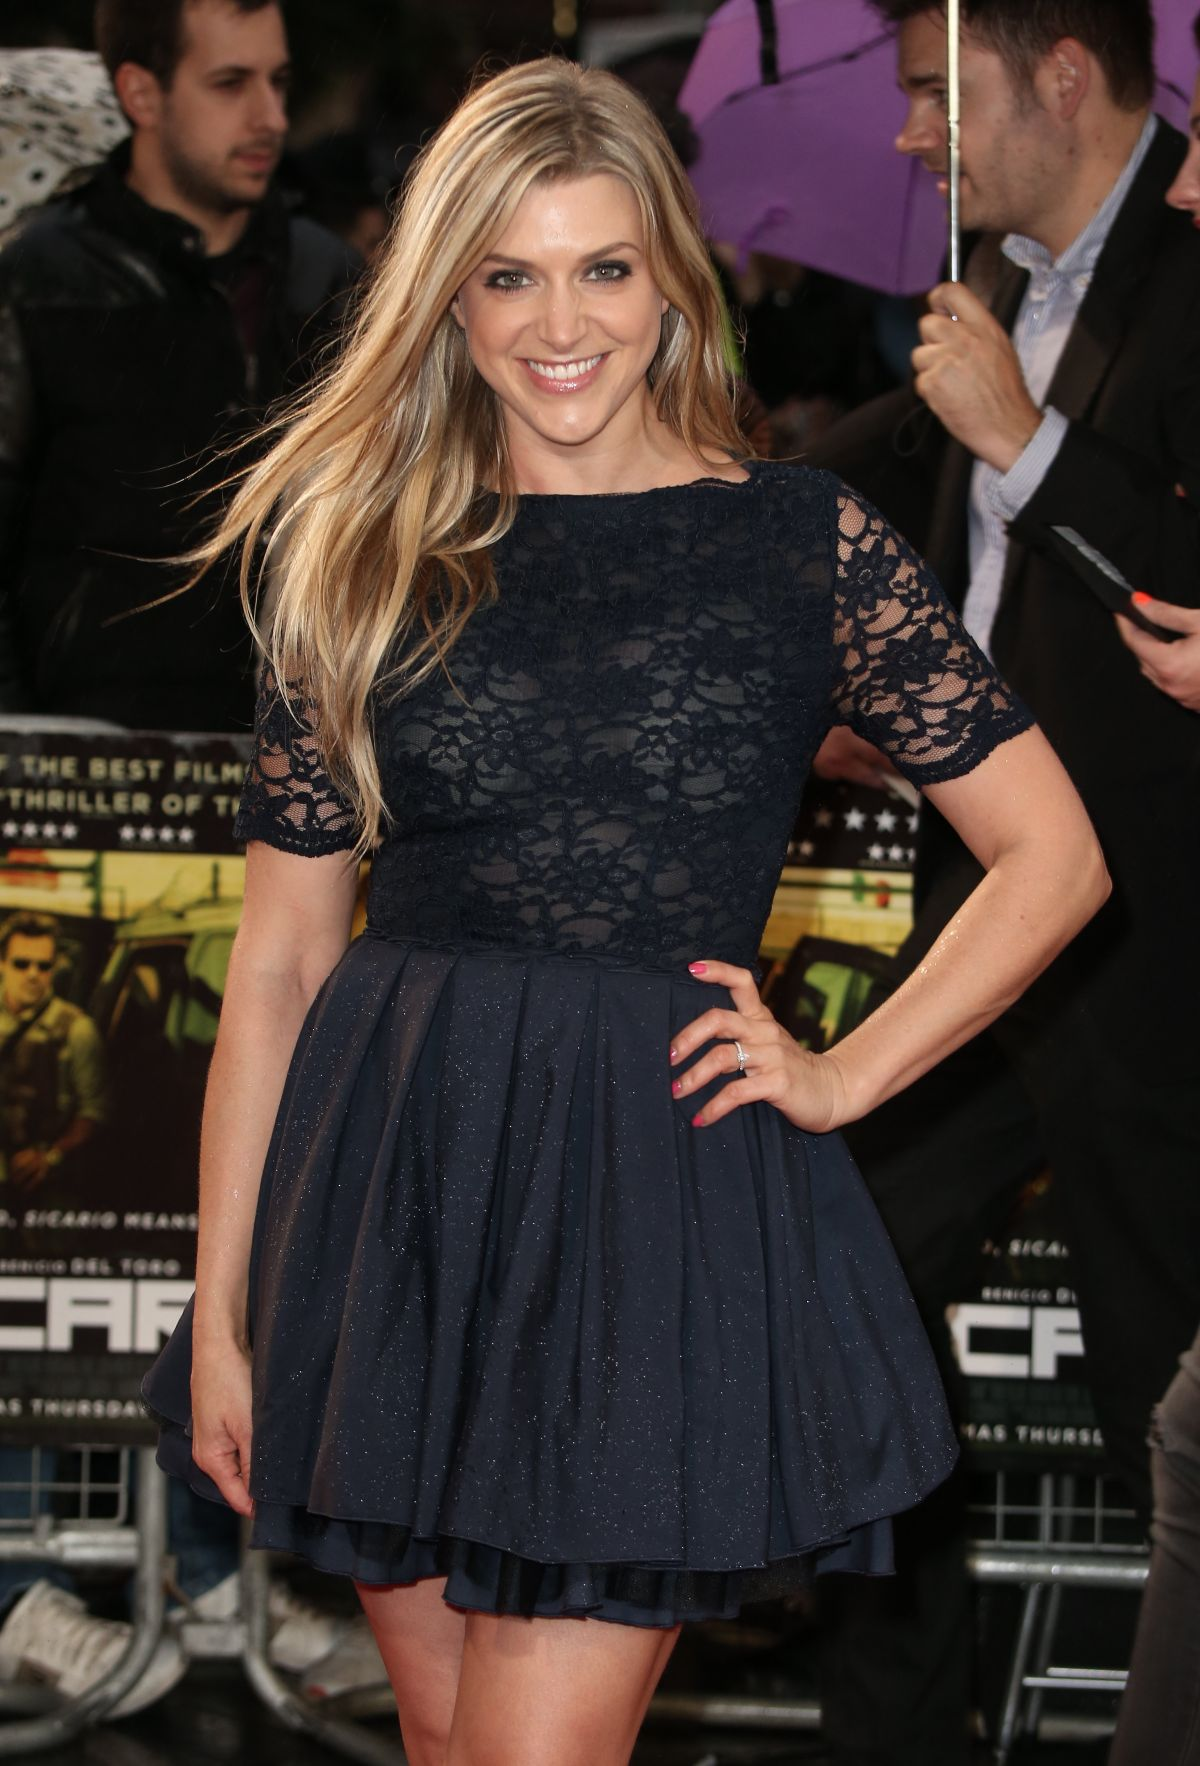 ANNA WILLIAMSON at Sicario Premiere in London 09/21/2015